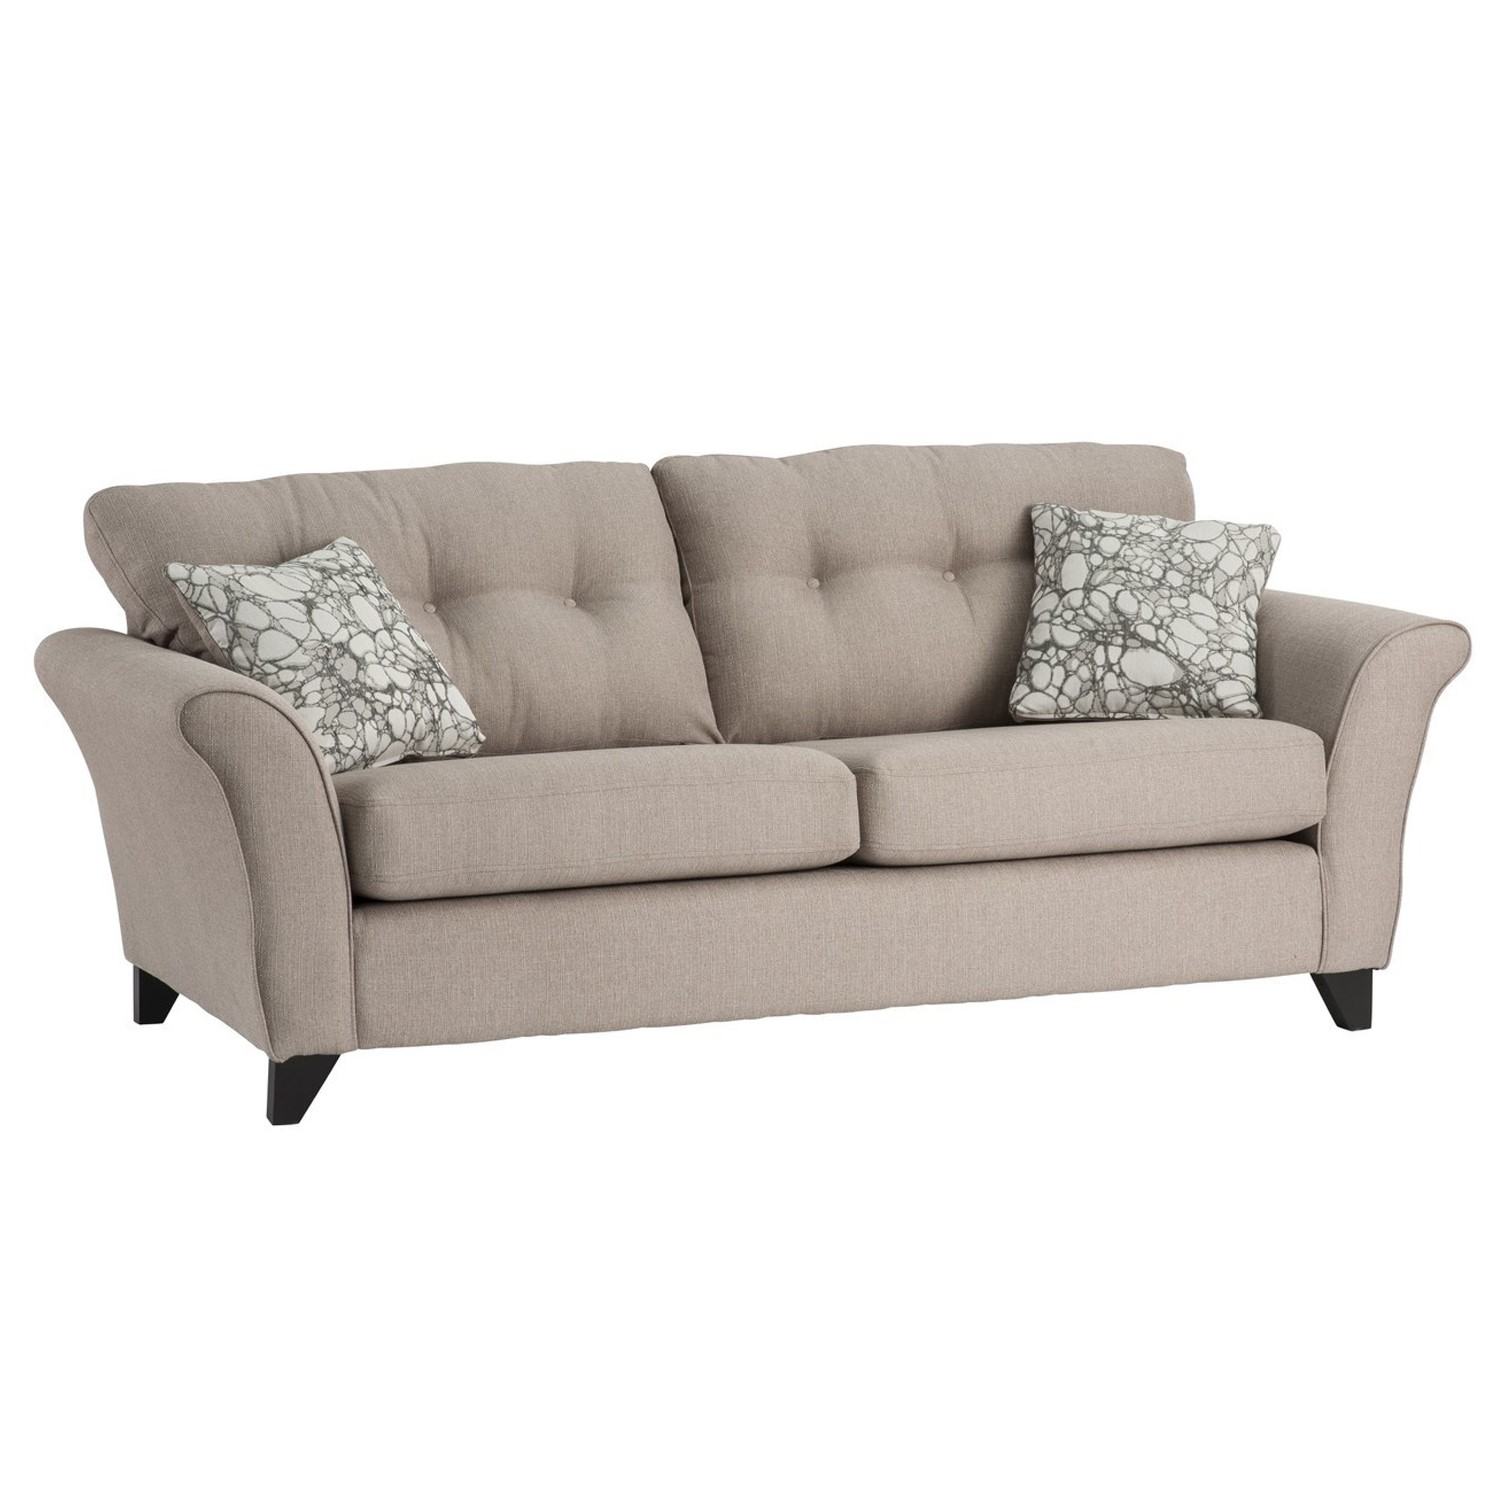 Phenomenal Canterbury 3 Seater Sofa In Beige Fabric Ncnpc Chair Design For Home Ncnpcorg